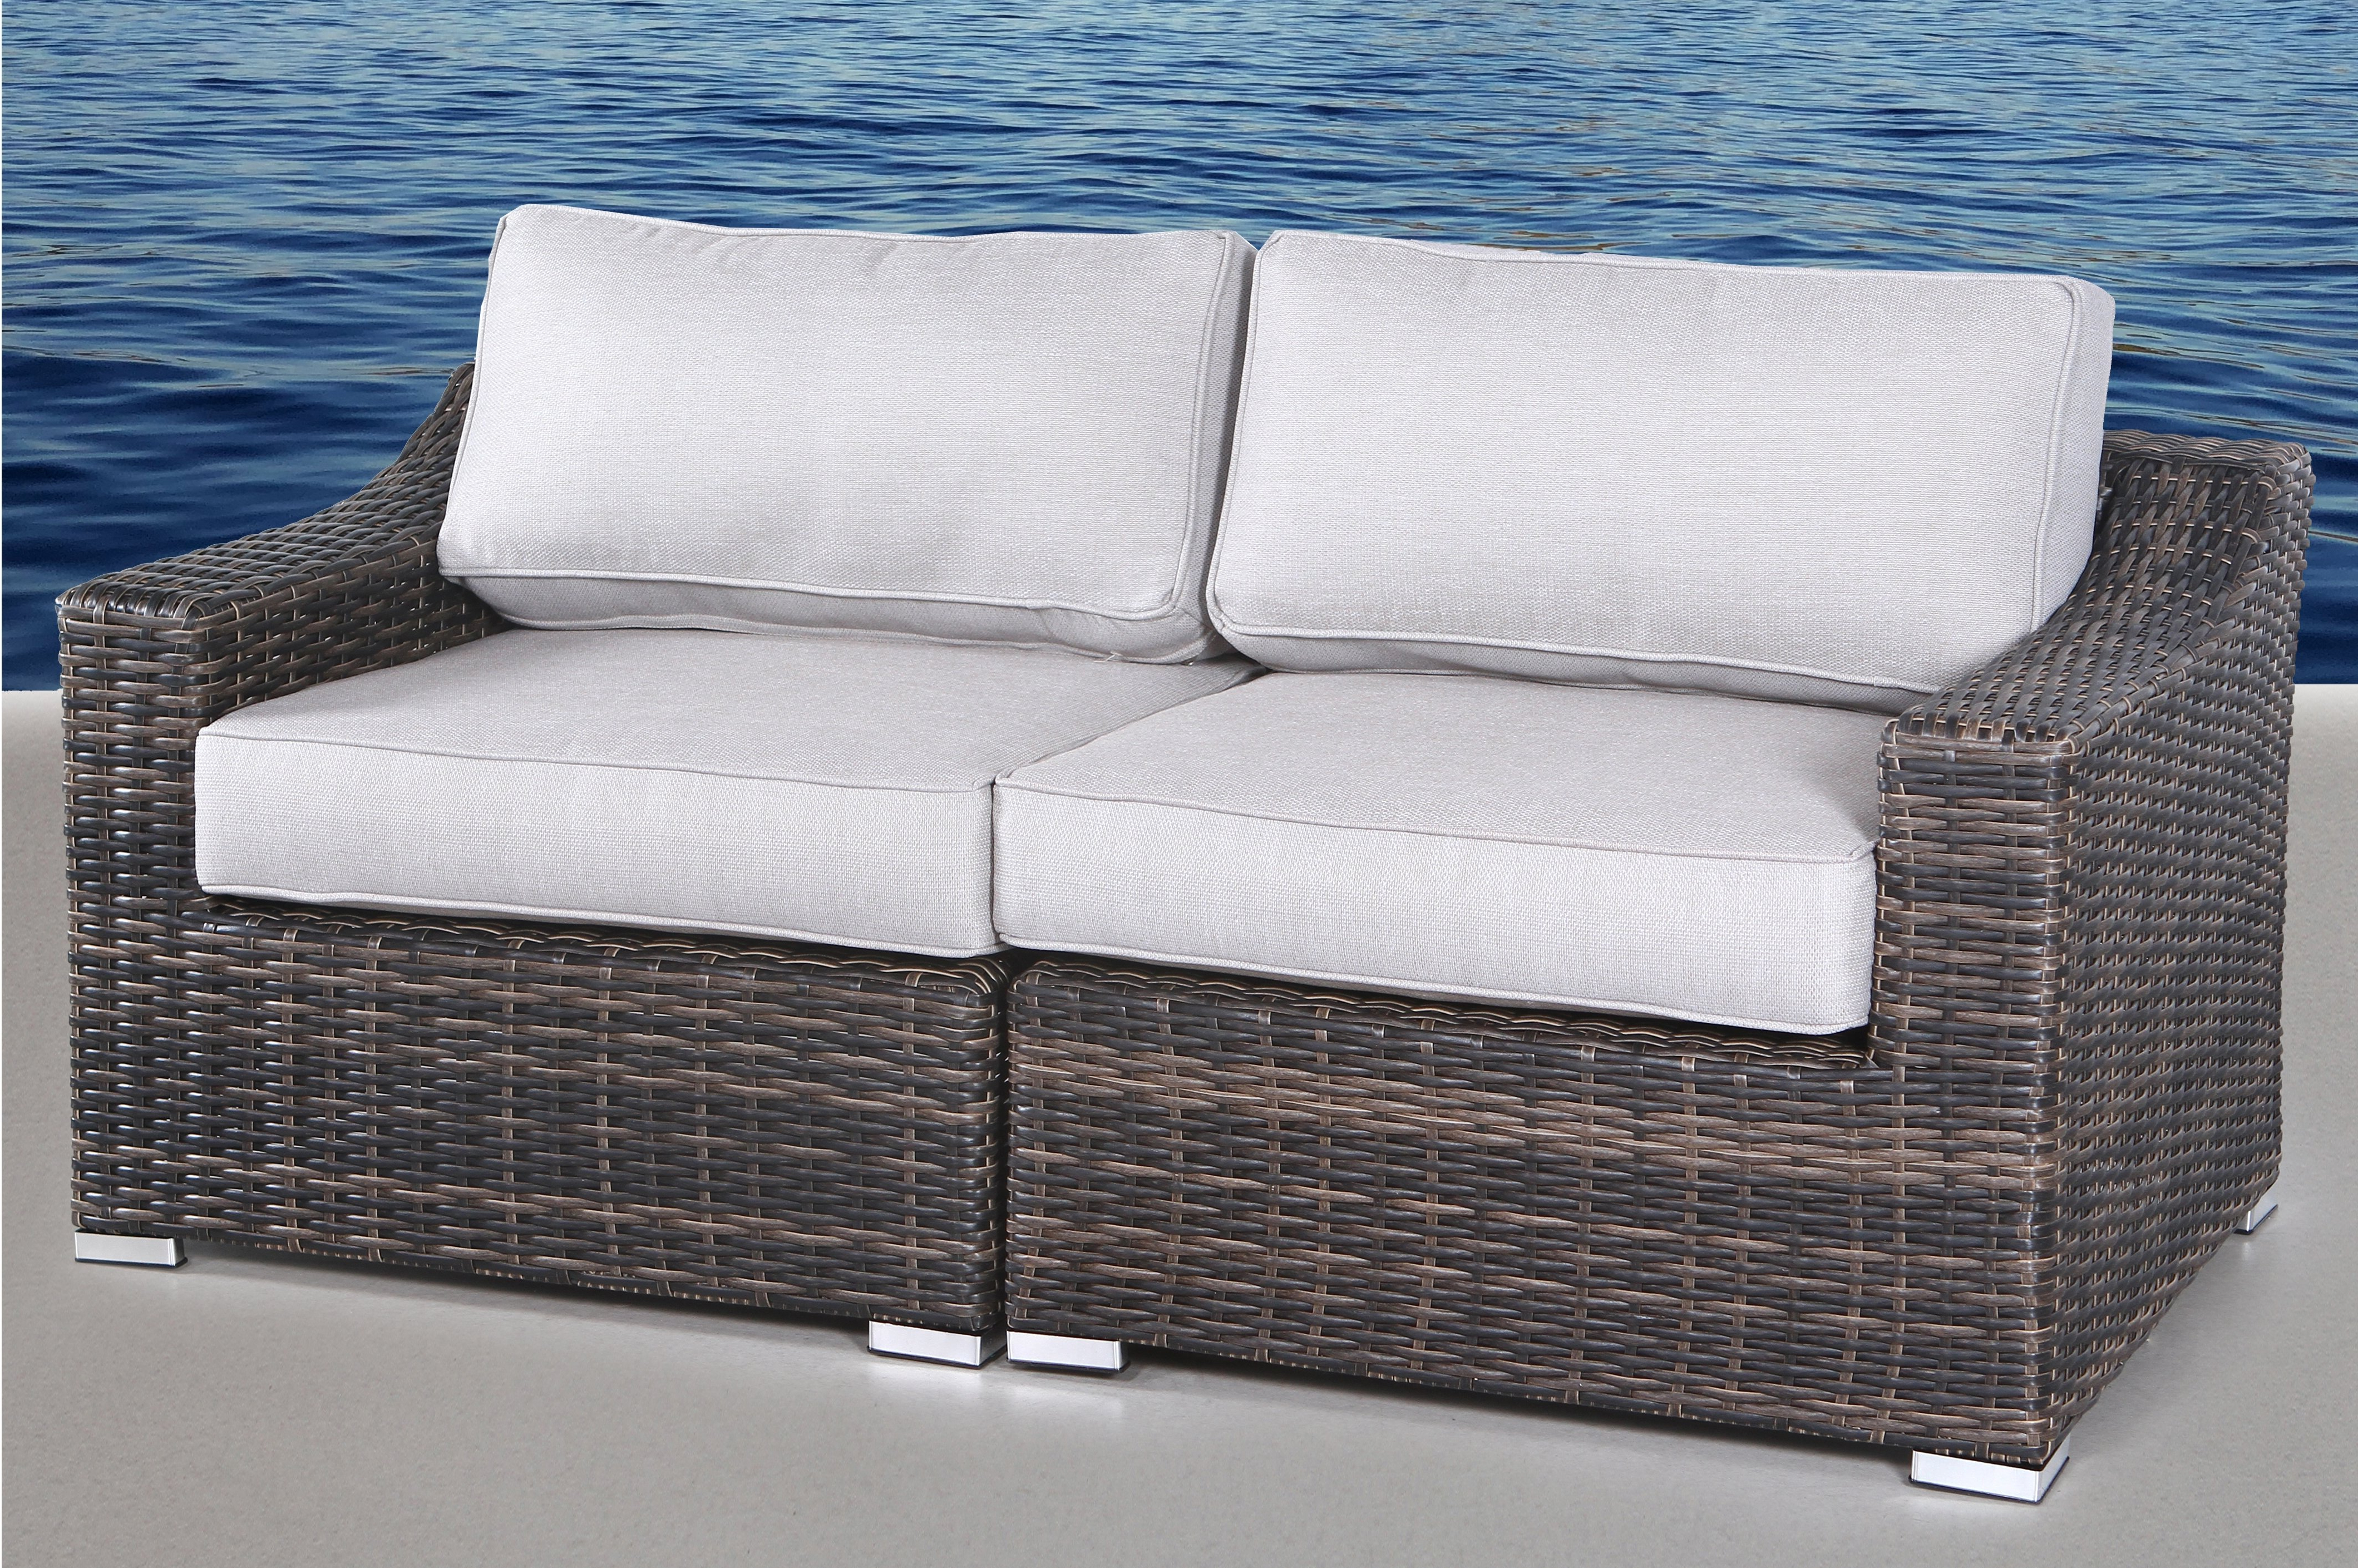 Vardin Loveseats With Cushions Pertaining To Trendy Huddleson Loveseat With Cushion (Gallery 3 of 20)